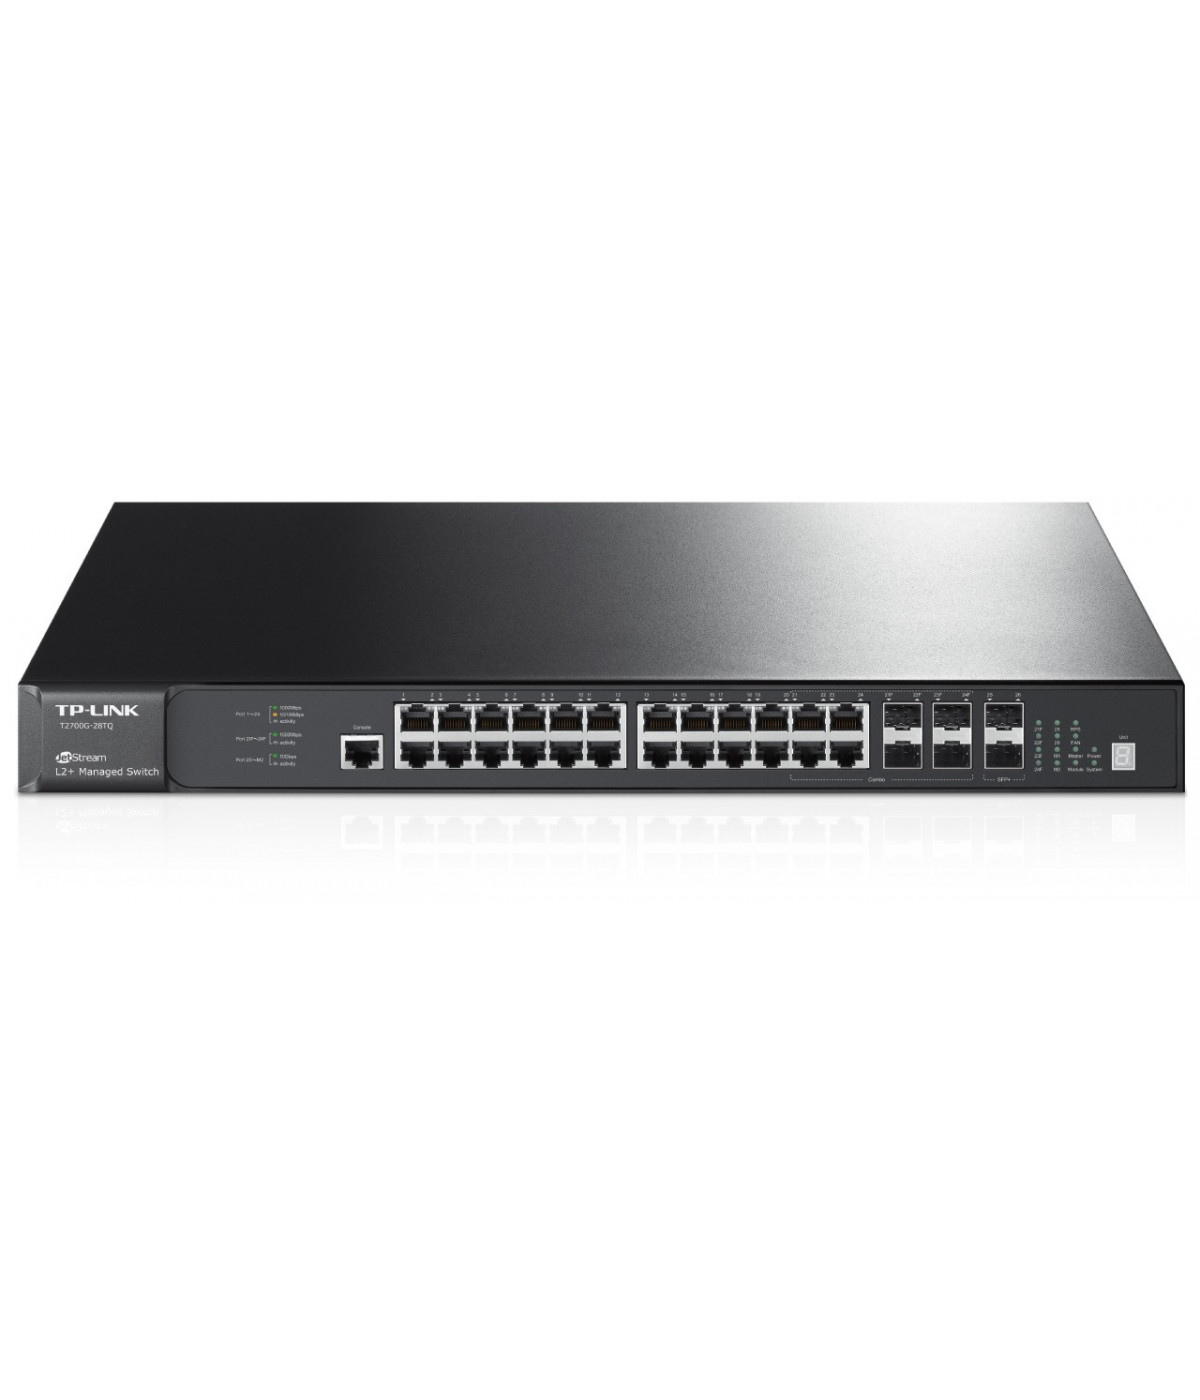 SWITCH TP-LINK T2700G-28TQ